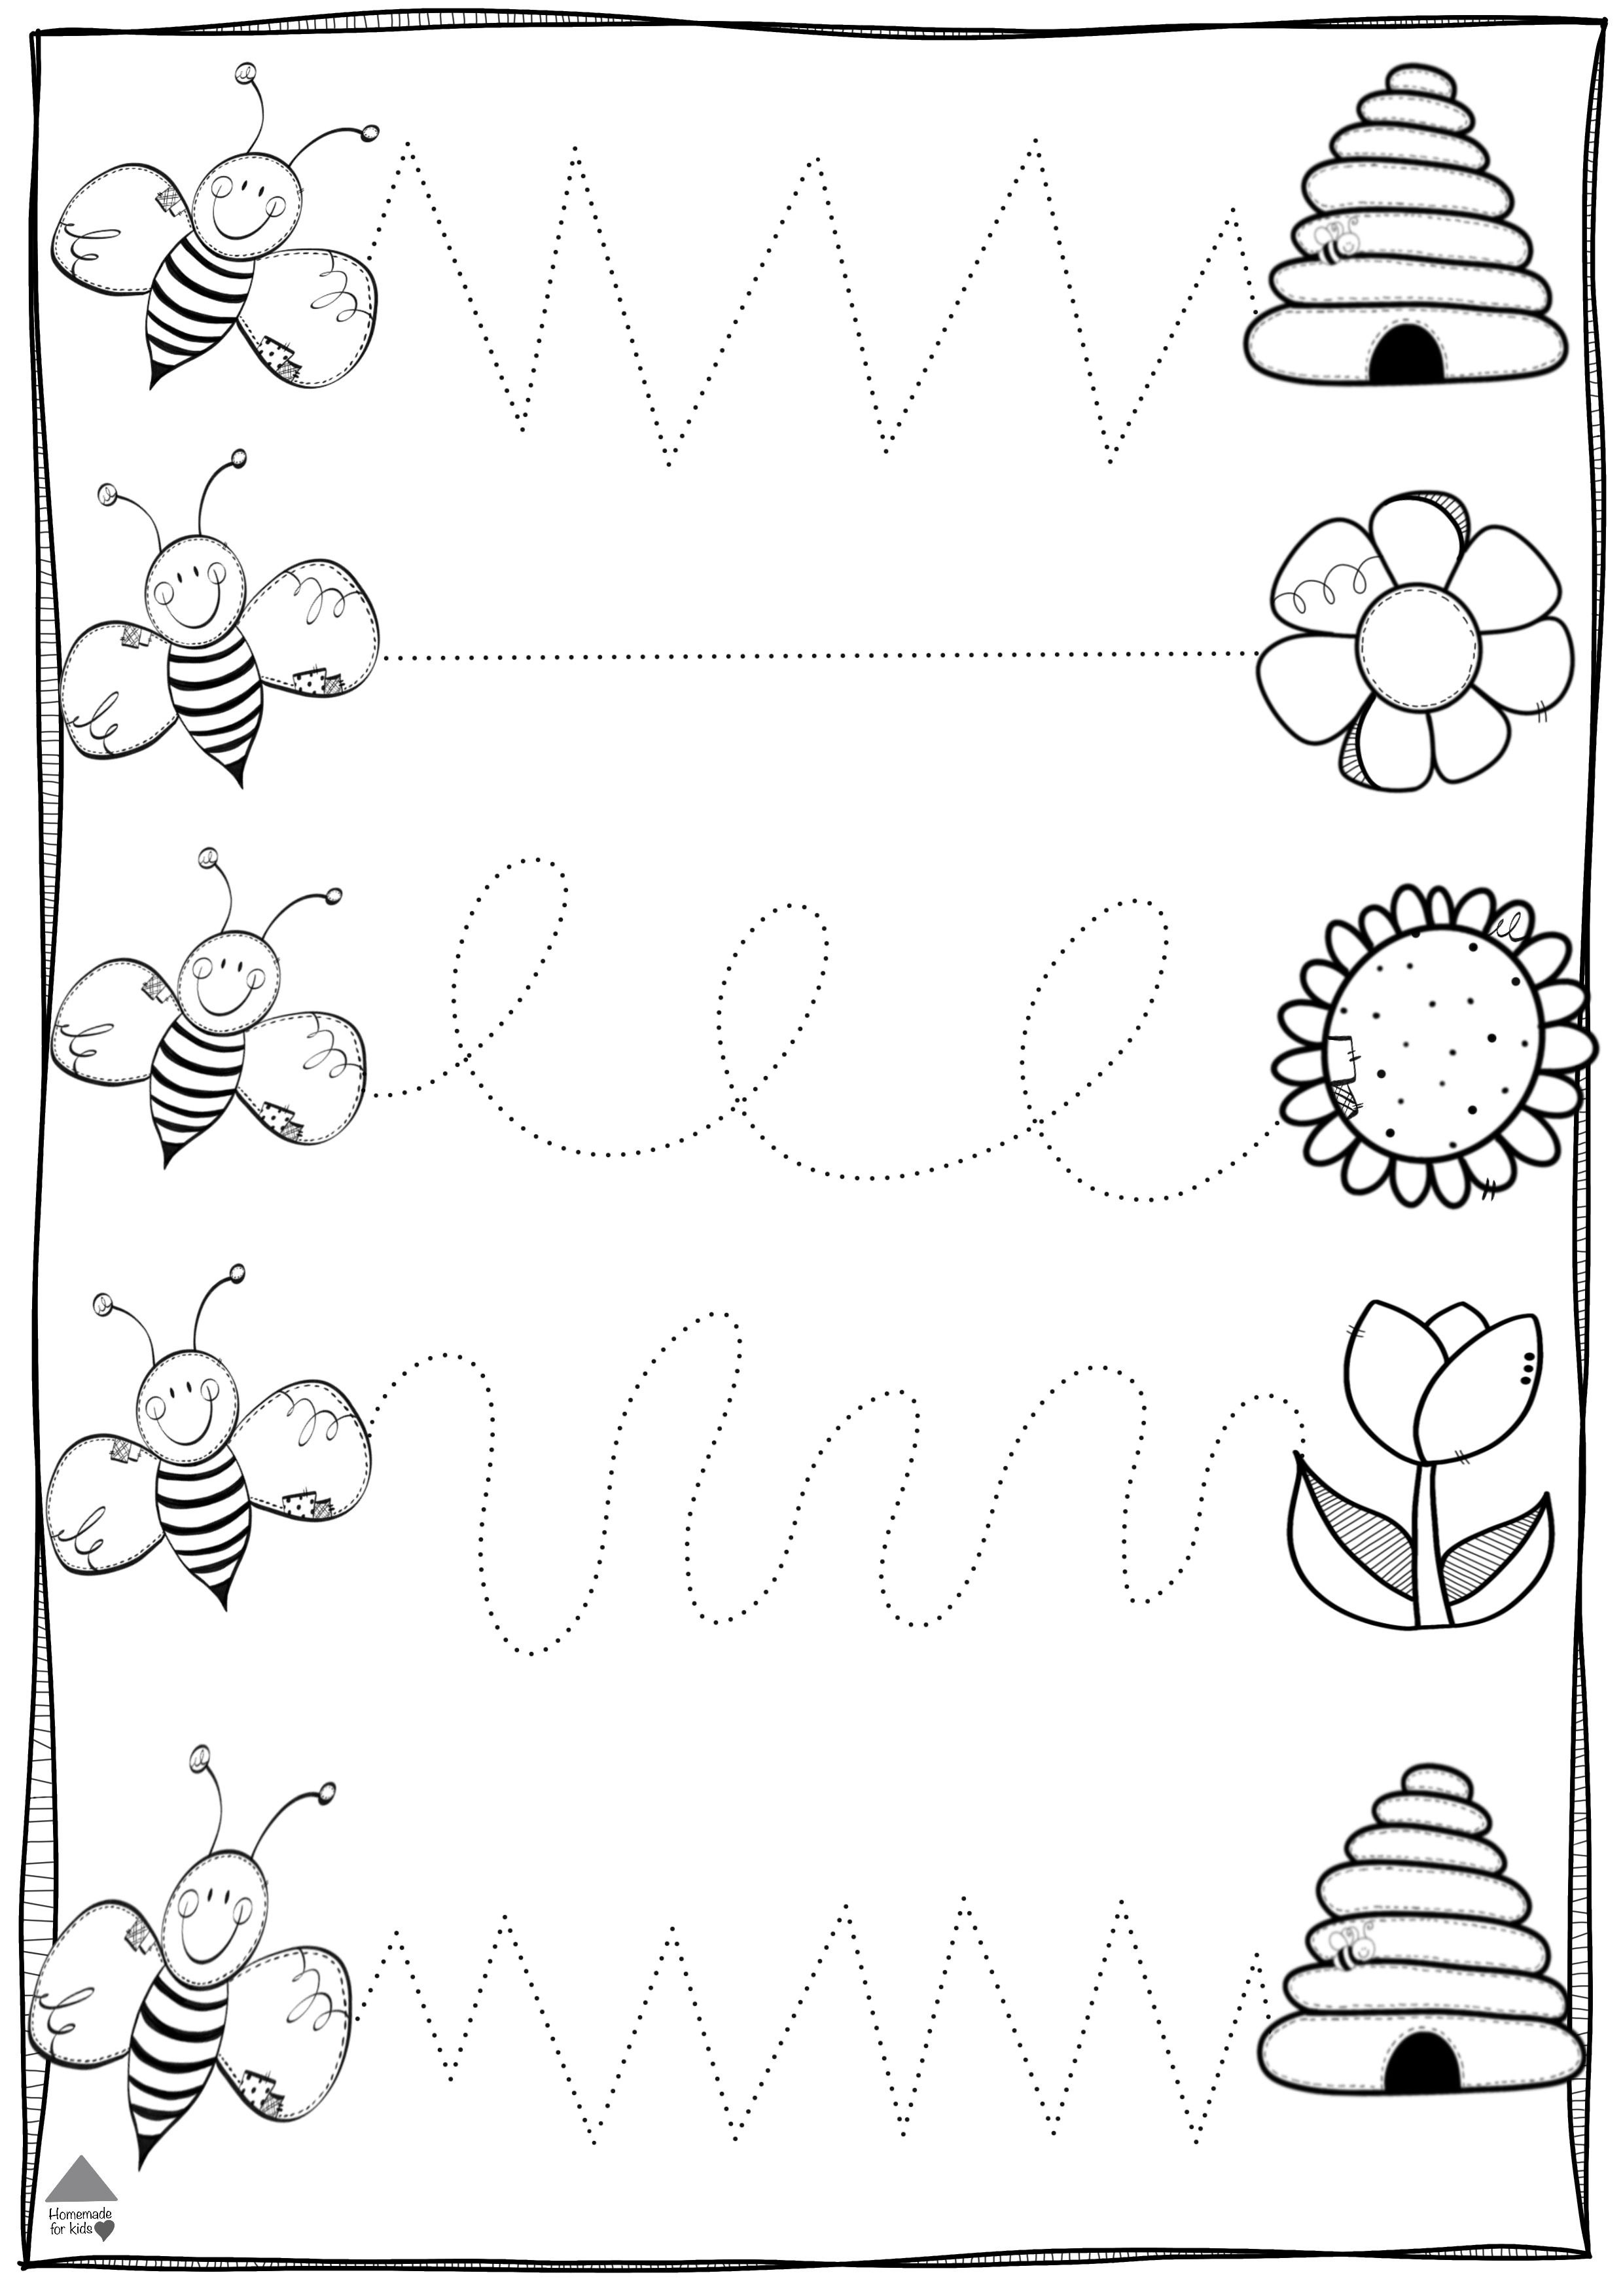 Pin On Preschool Worksheets